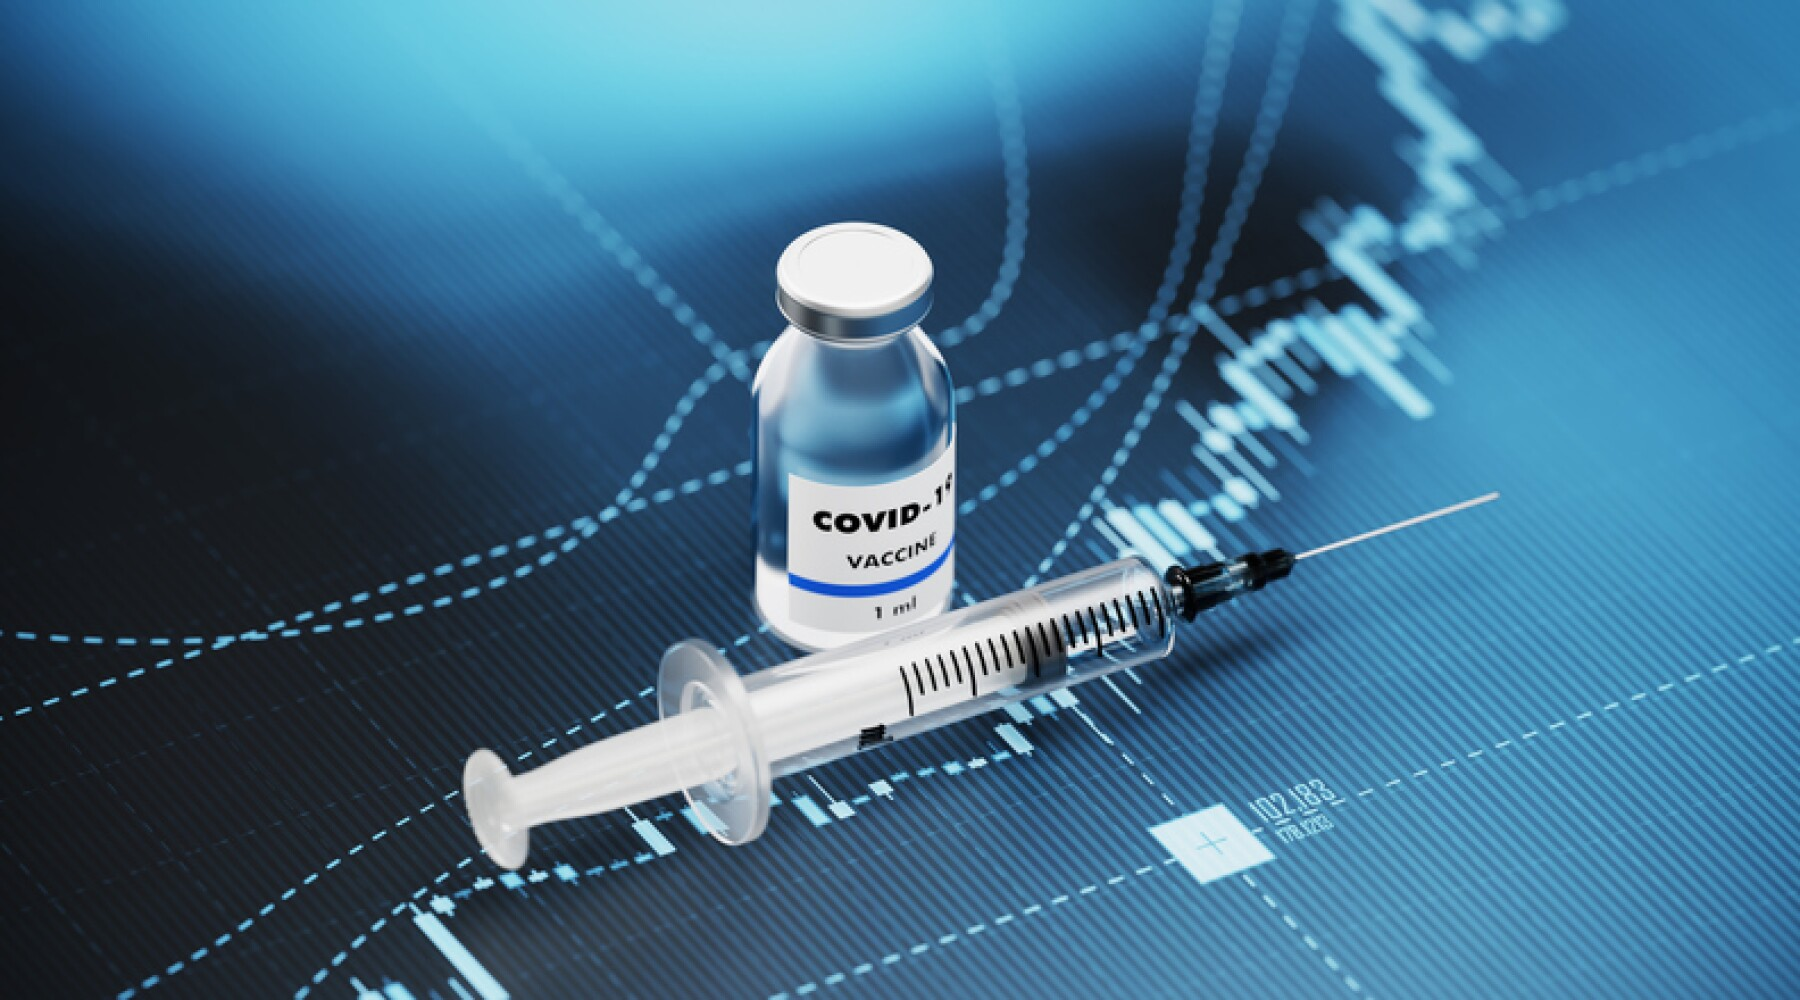 COVID-19 Vaccine and Syringe Sitting over Blue Financial Graph Background - COVID-19 Vaccine and Stock Market and Finance Concept